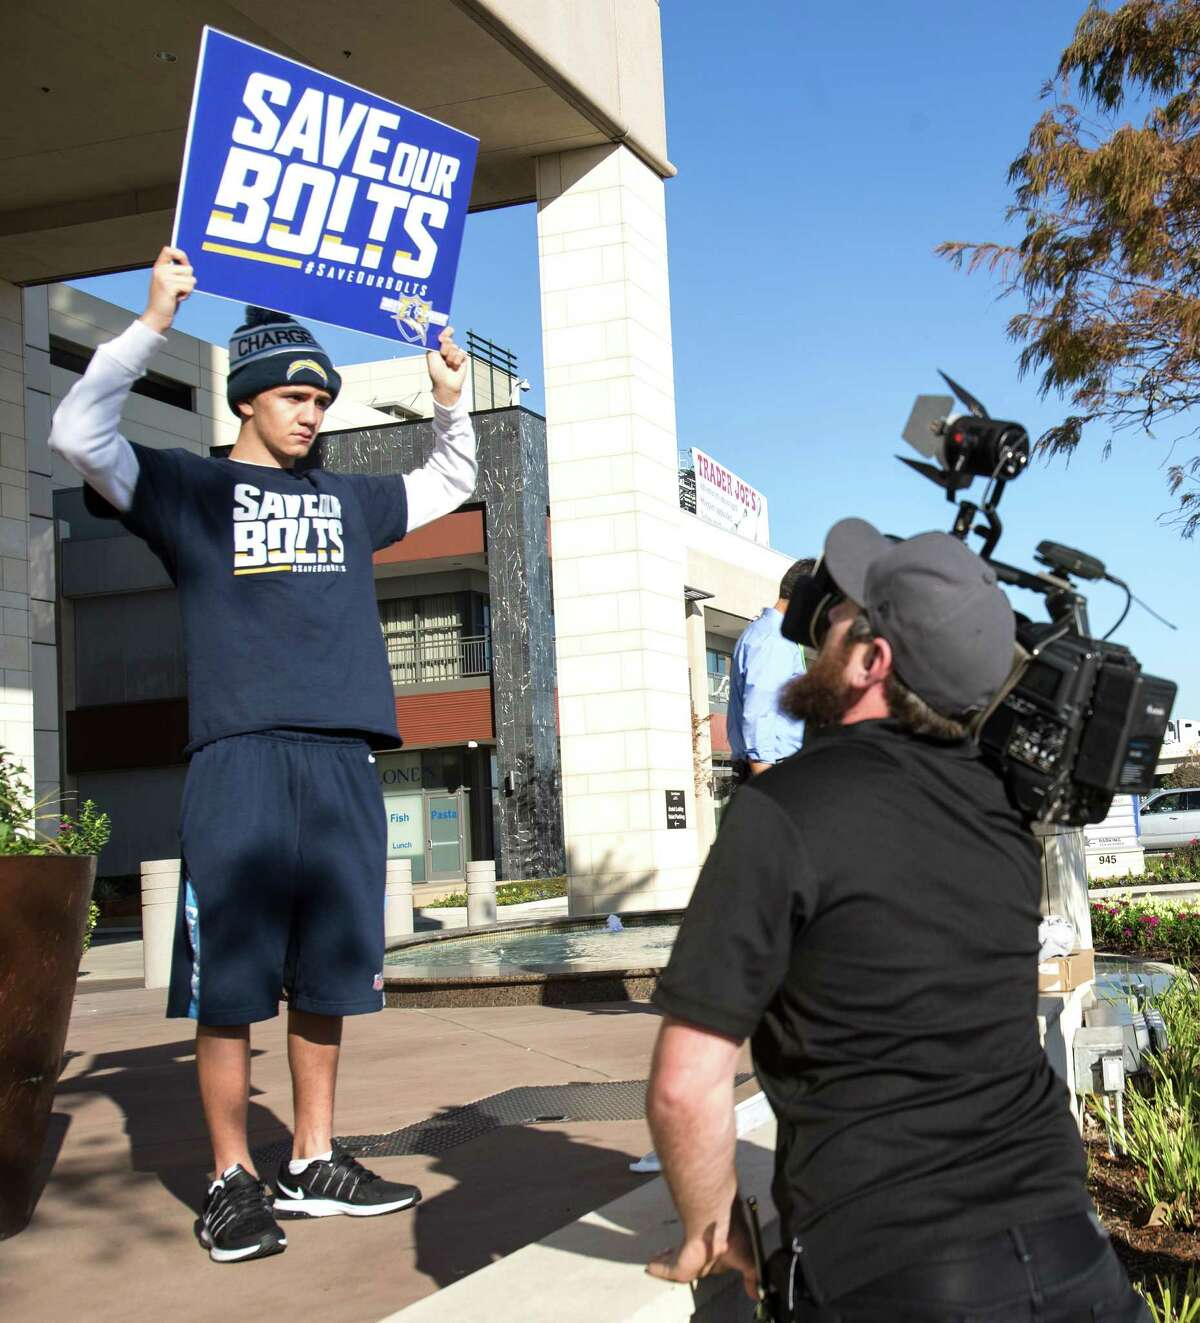 San Diego Chargers fan Richard Farley stands outside the Westin Houston Memorial City hotel during the NFL owners meetings on Tuesday, Jan. 12, 2016, in Houston. Farley is hoping to keep the Chargers in San Diego.